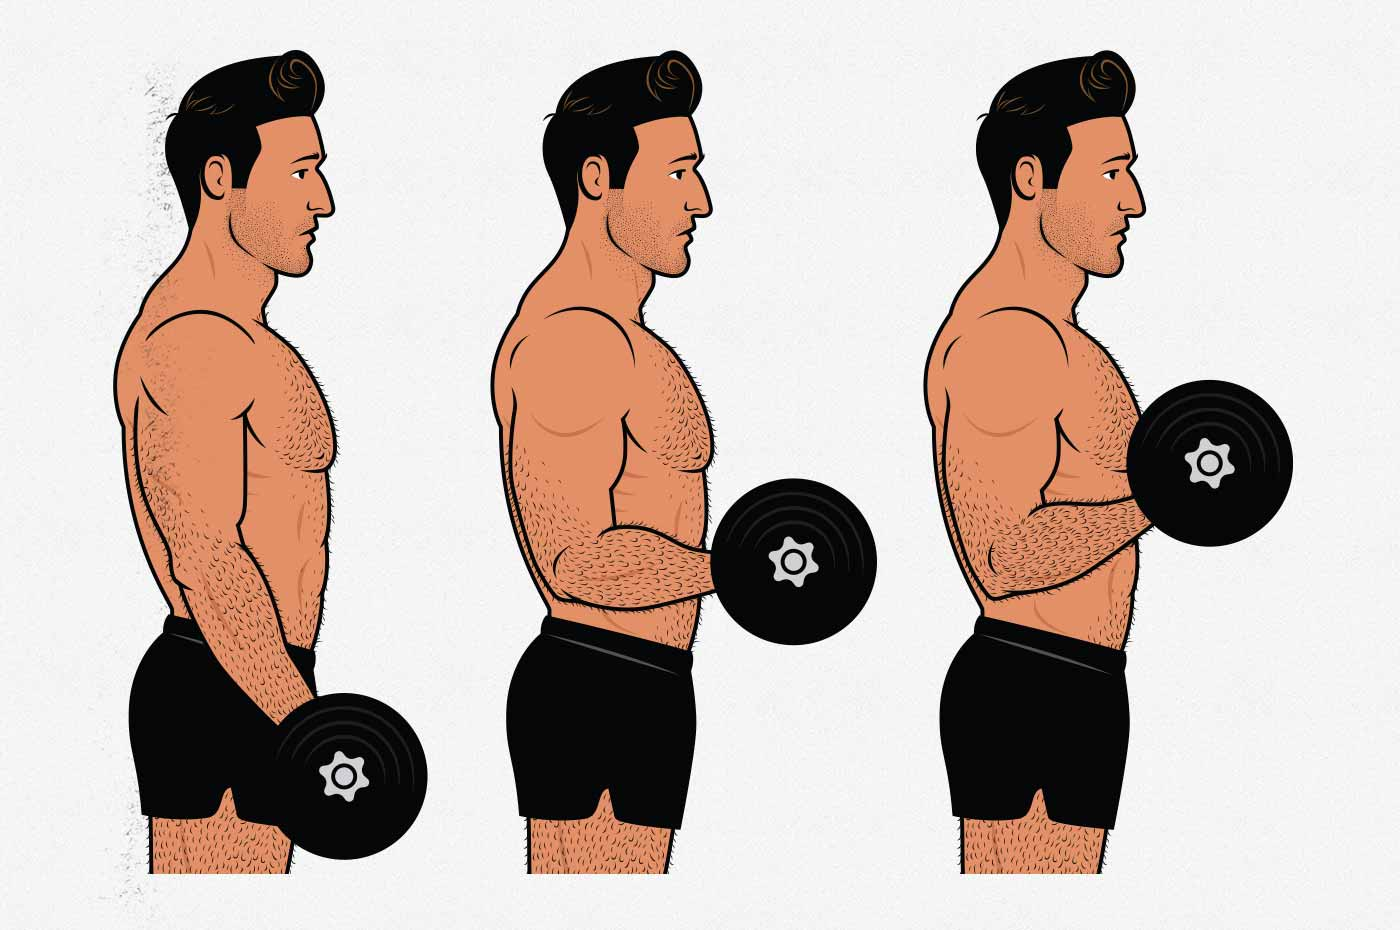 Illustration showing a bodybuilder who is doing intermittent fasting.